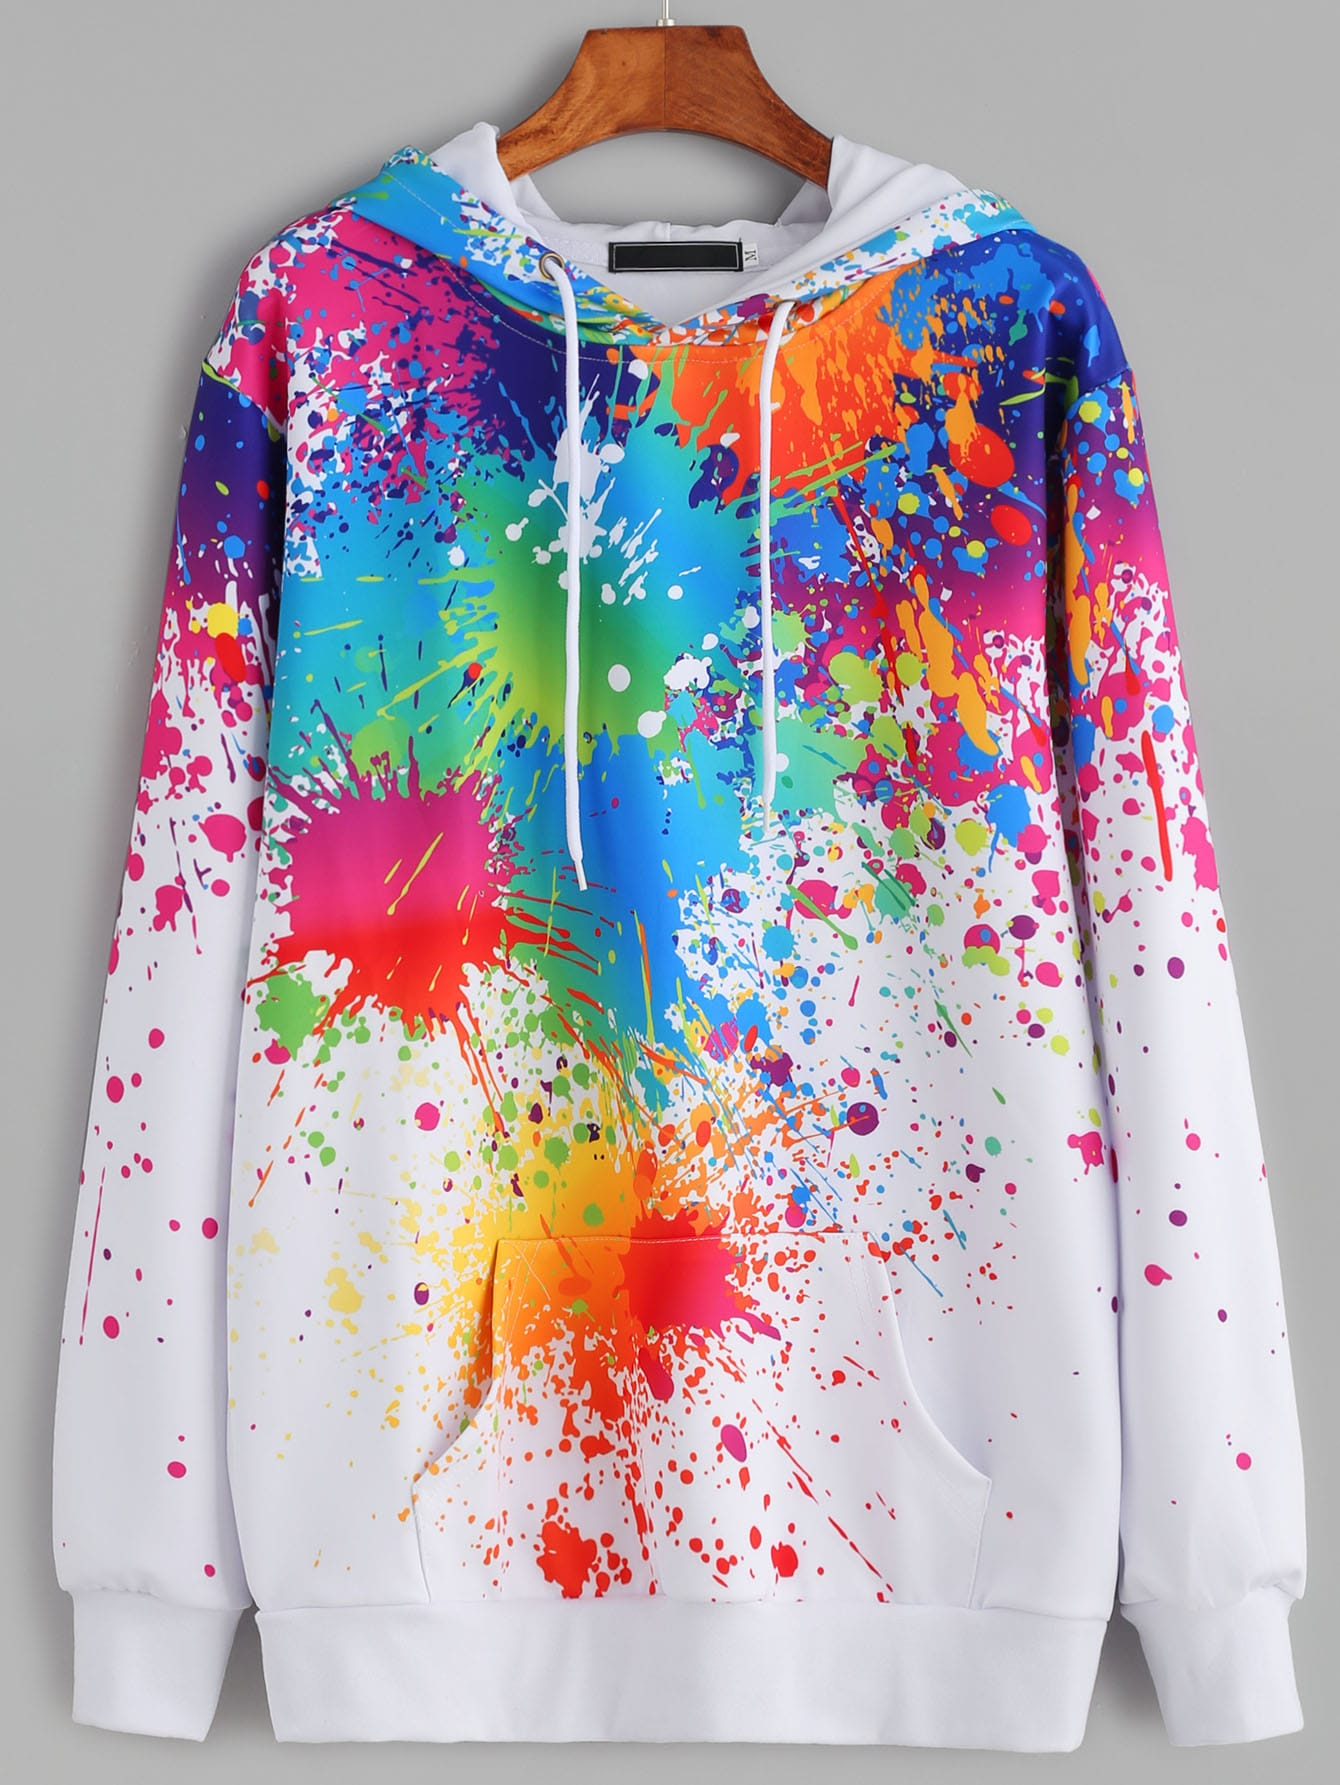 Paint Splatter Print Drawstring Hooded Sweatshirt Uk Shop